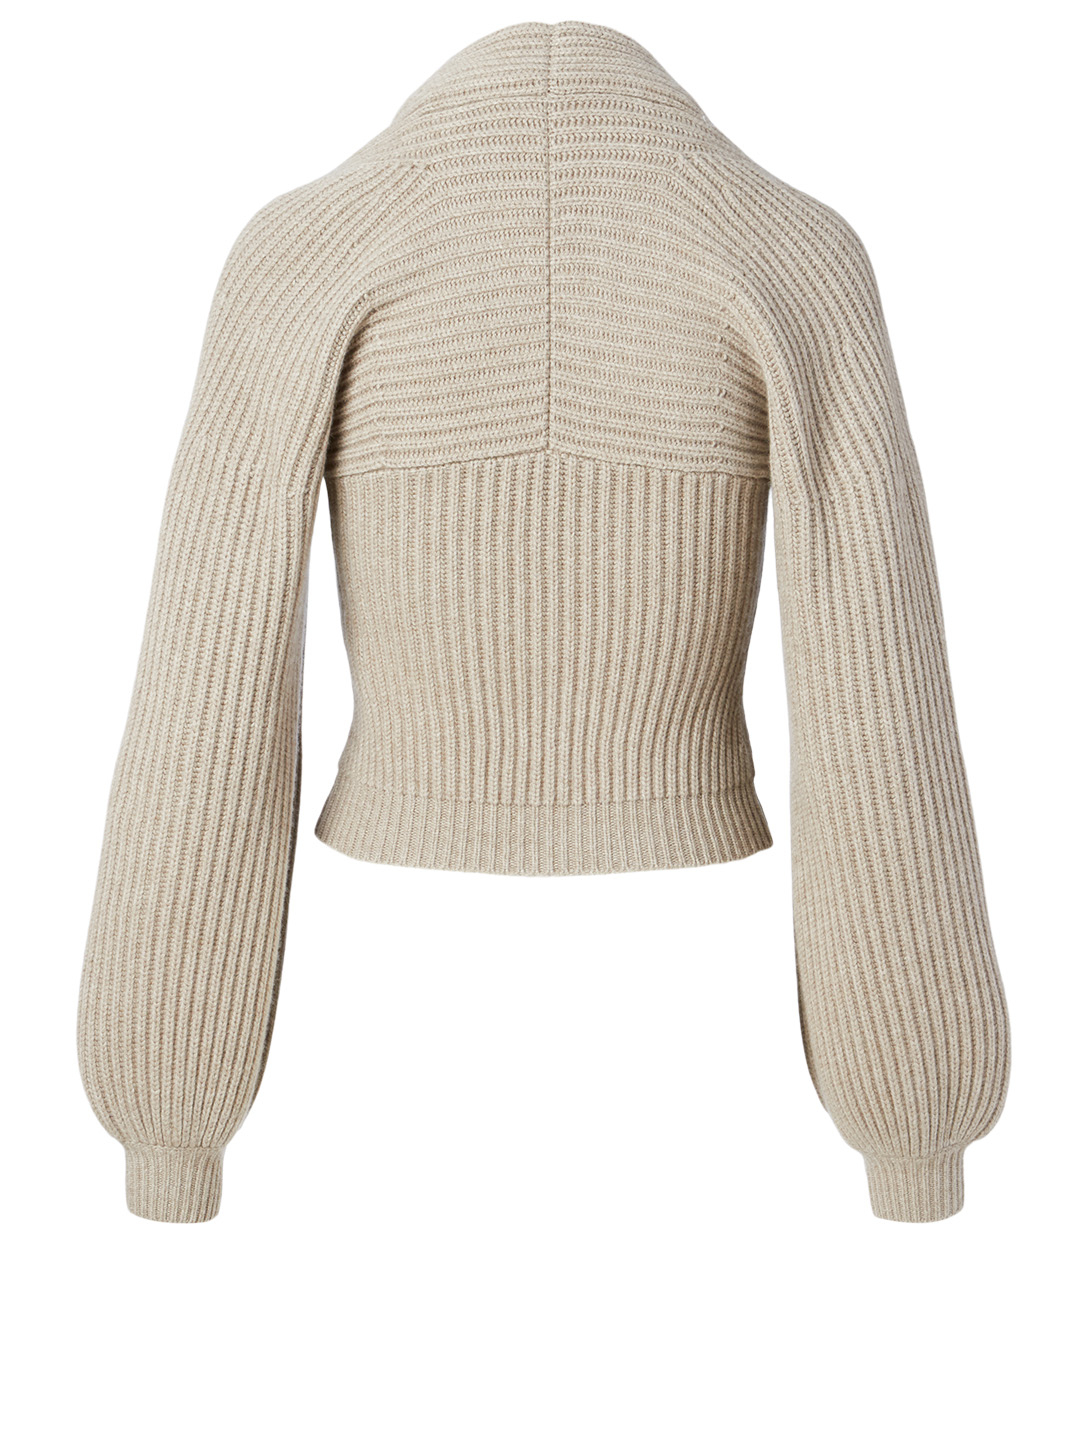 ALEXANDER WANG Wool And Cashmere Draped Neck Sweater Women's Beige